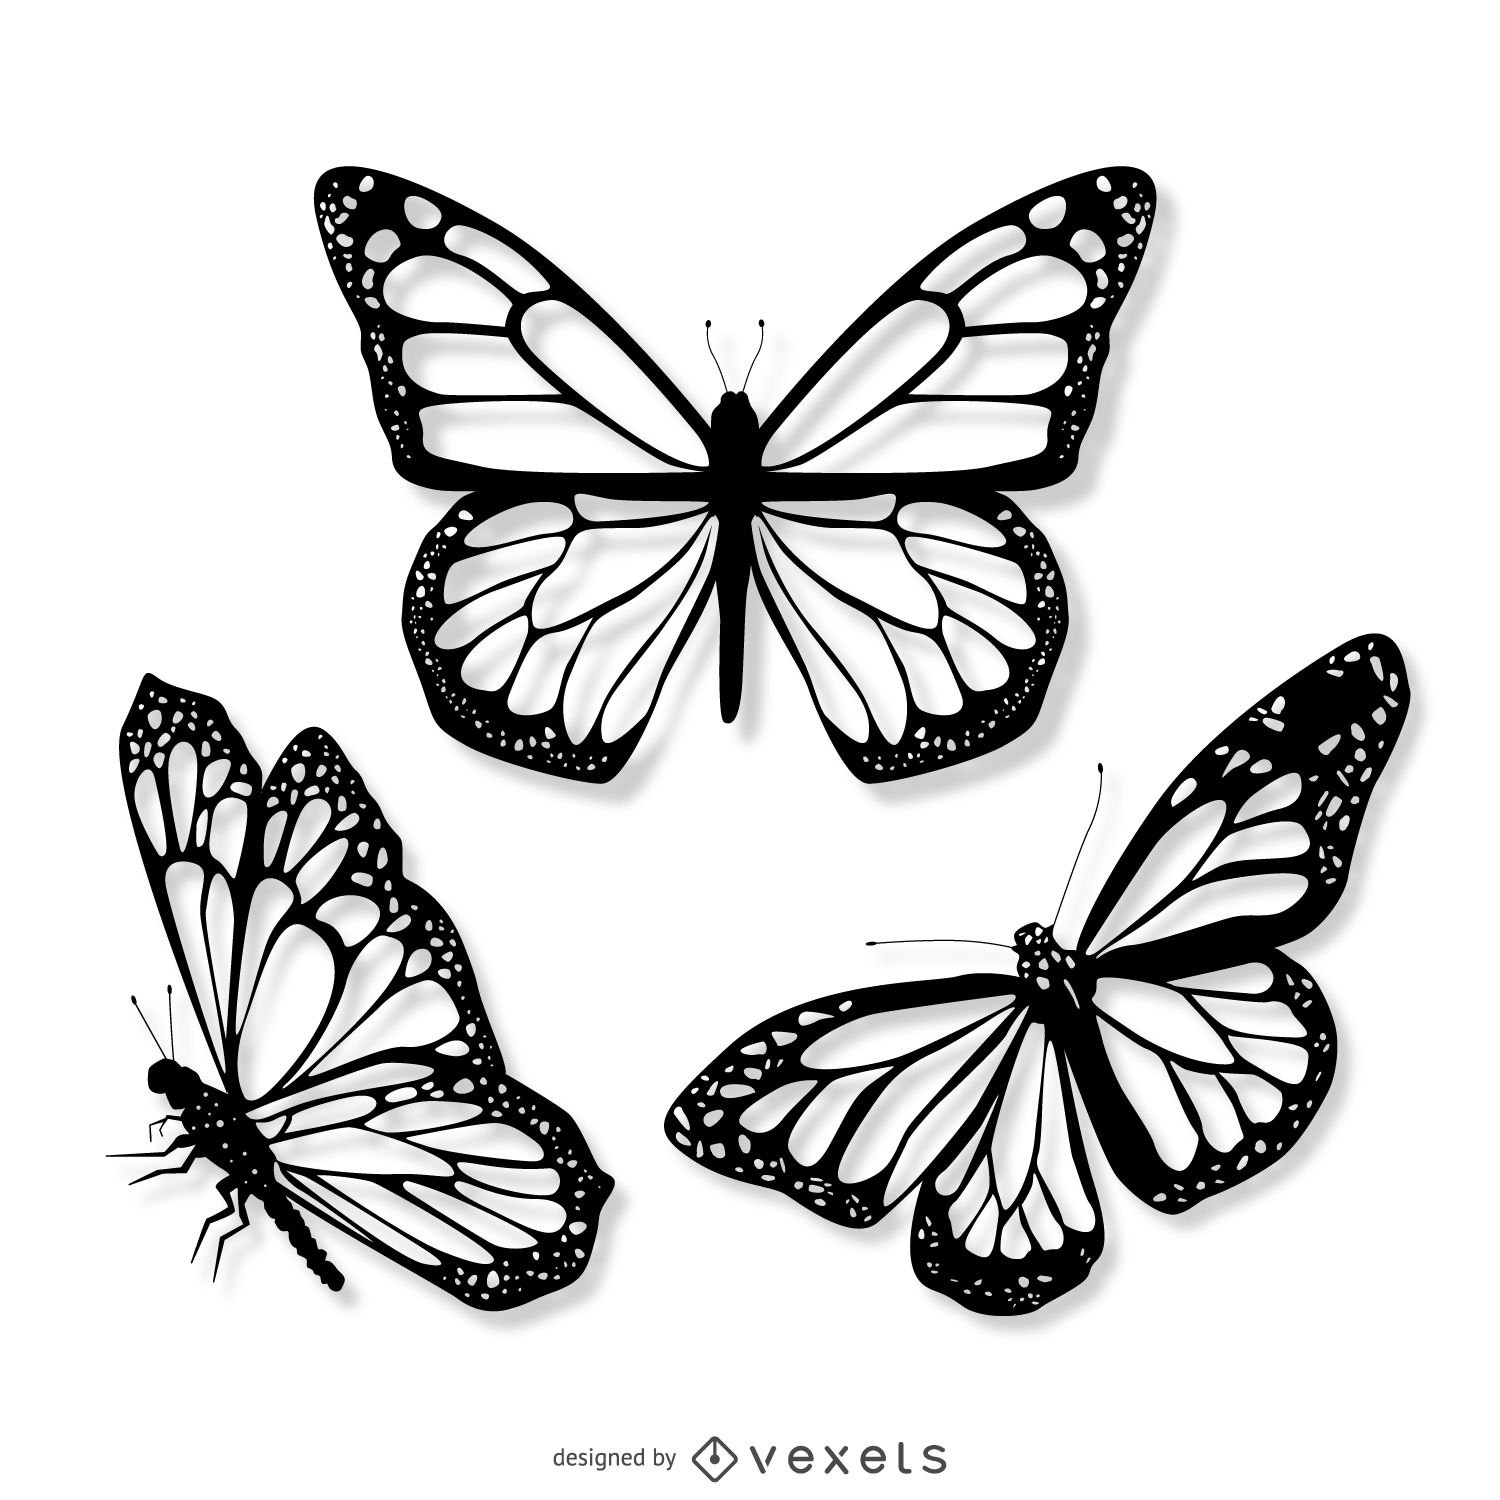 butterfly drawing how to draw a butterfly drawingforallnet drawing butterfly